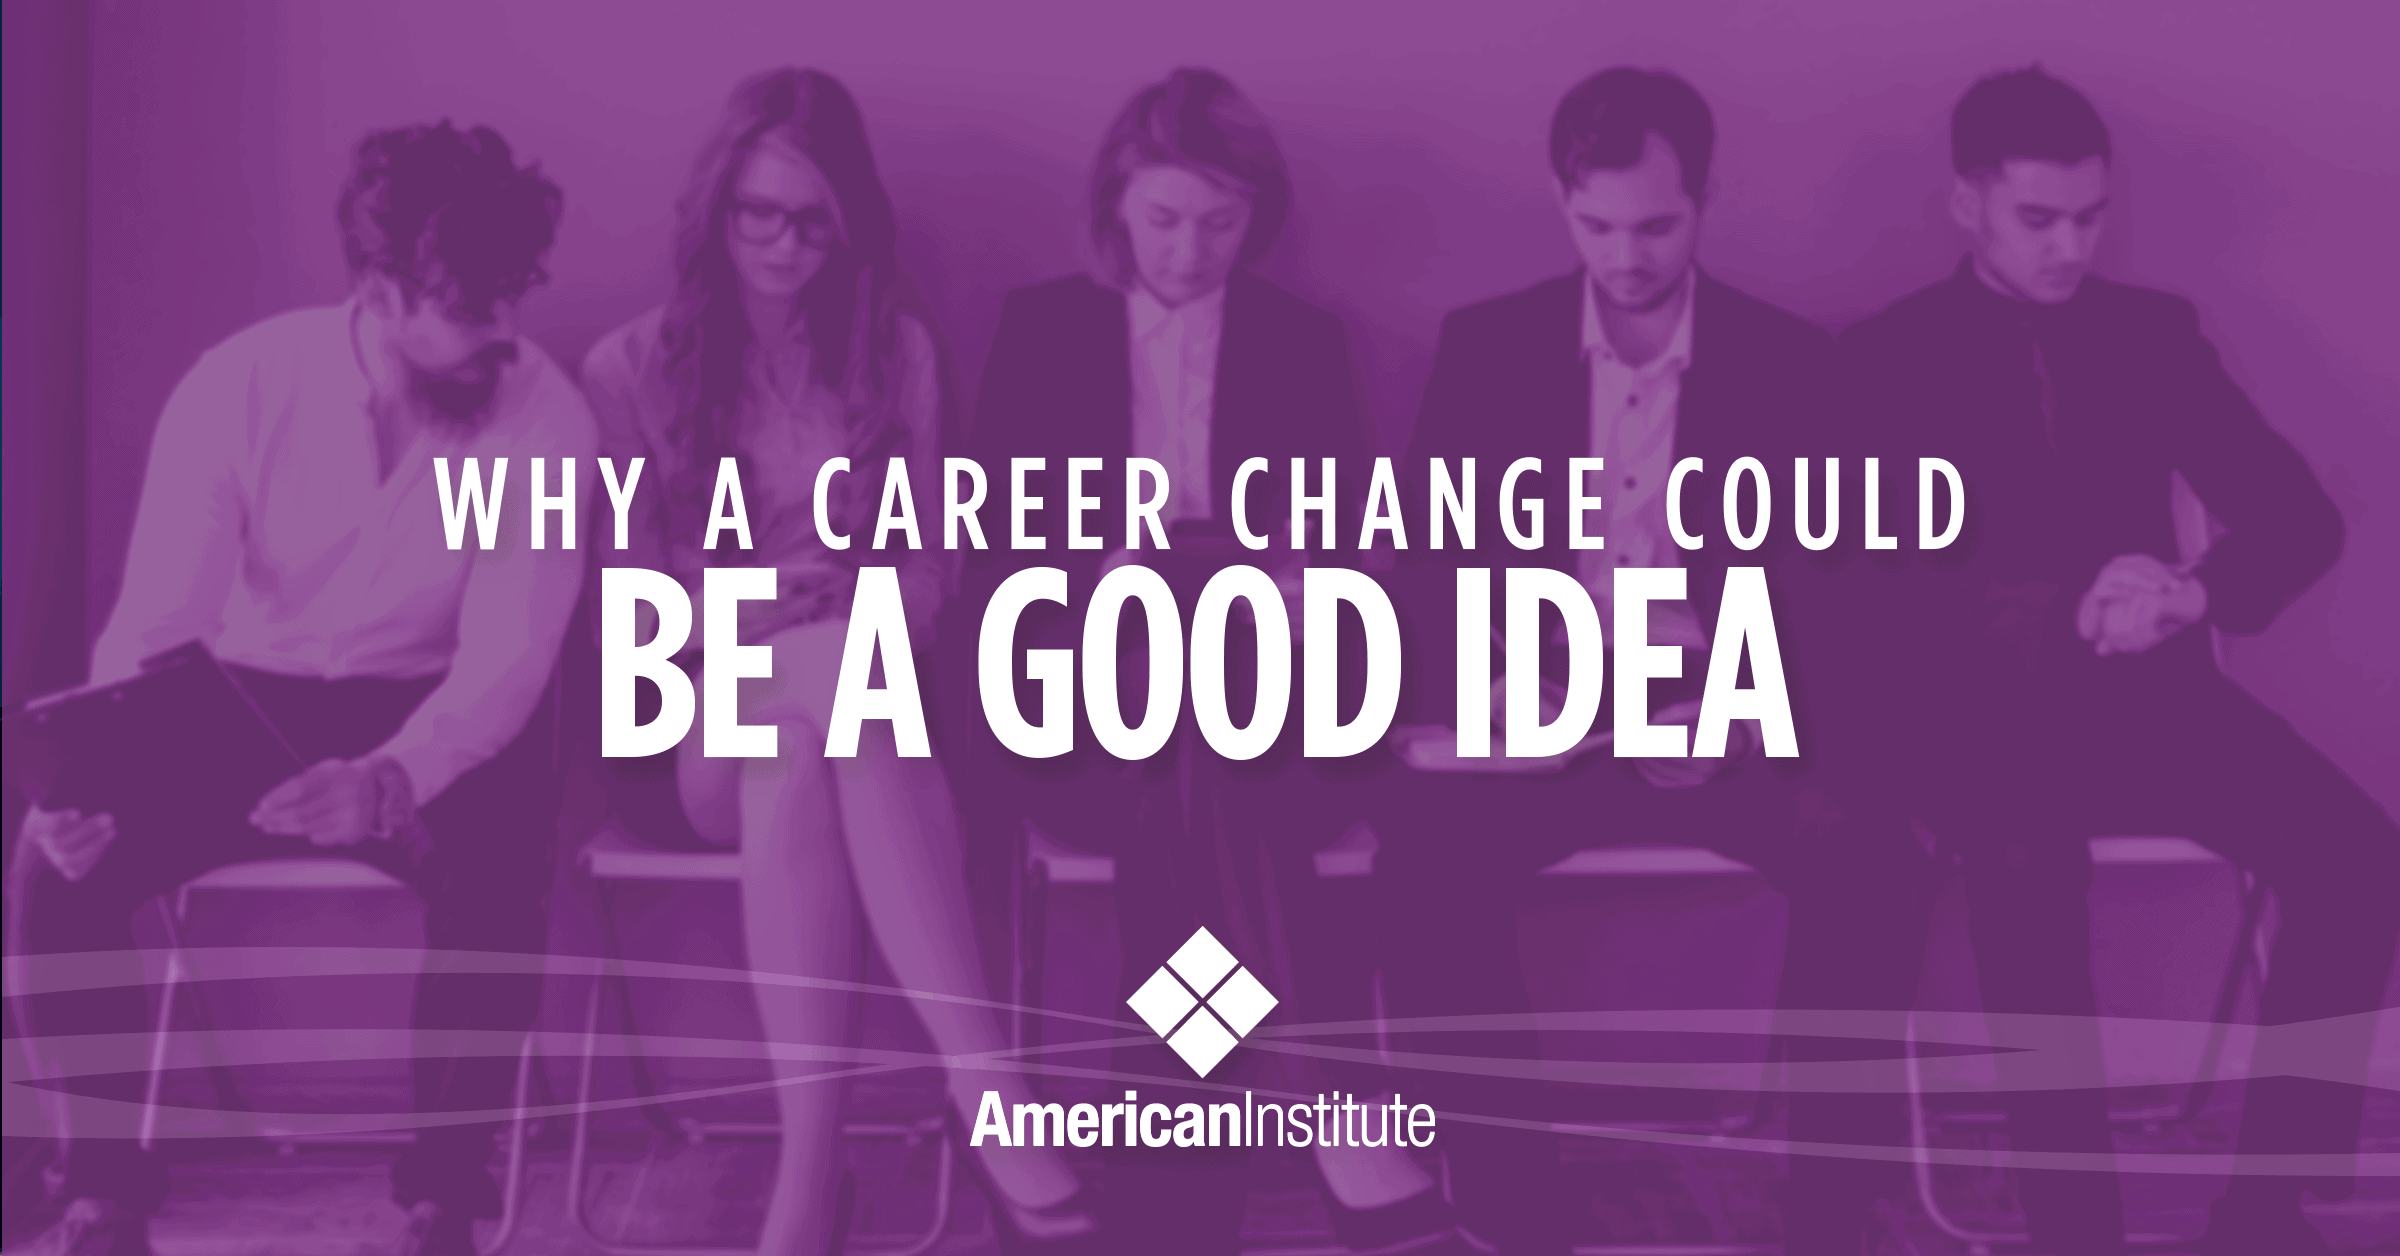 Why a Career Change Could be a Good Idea